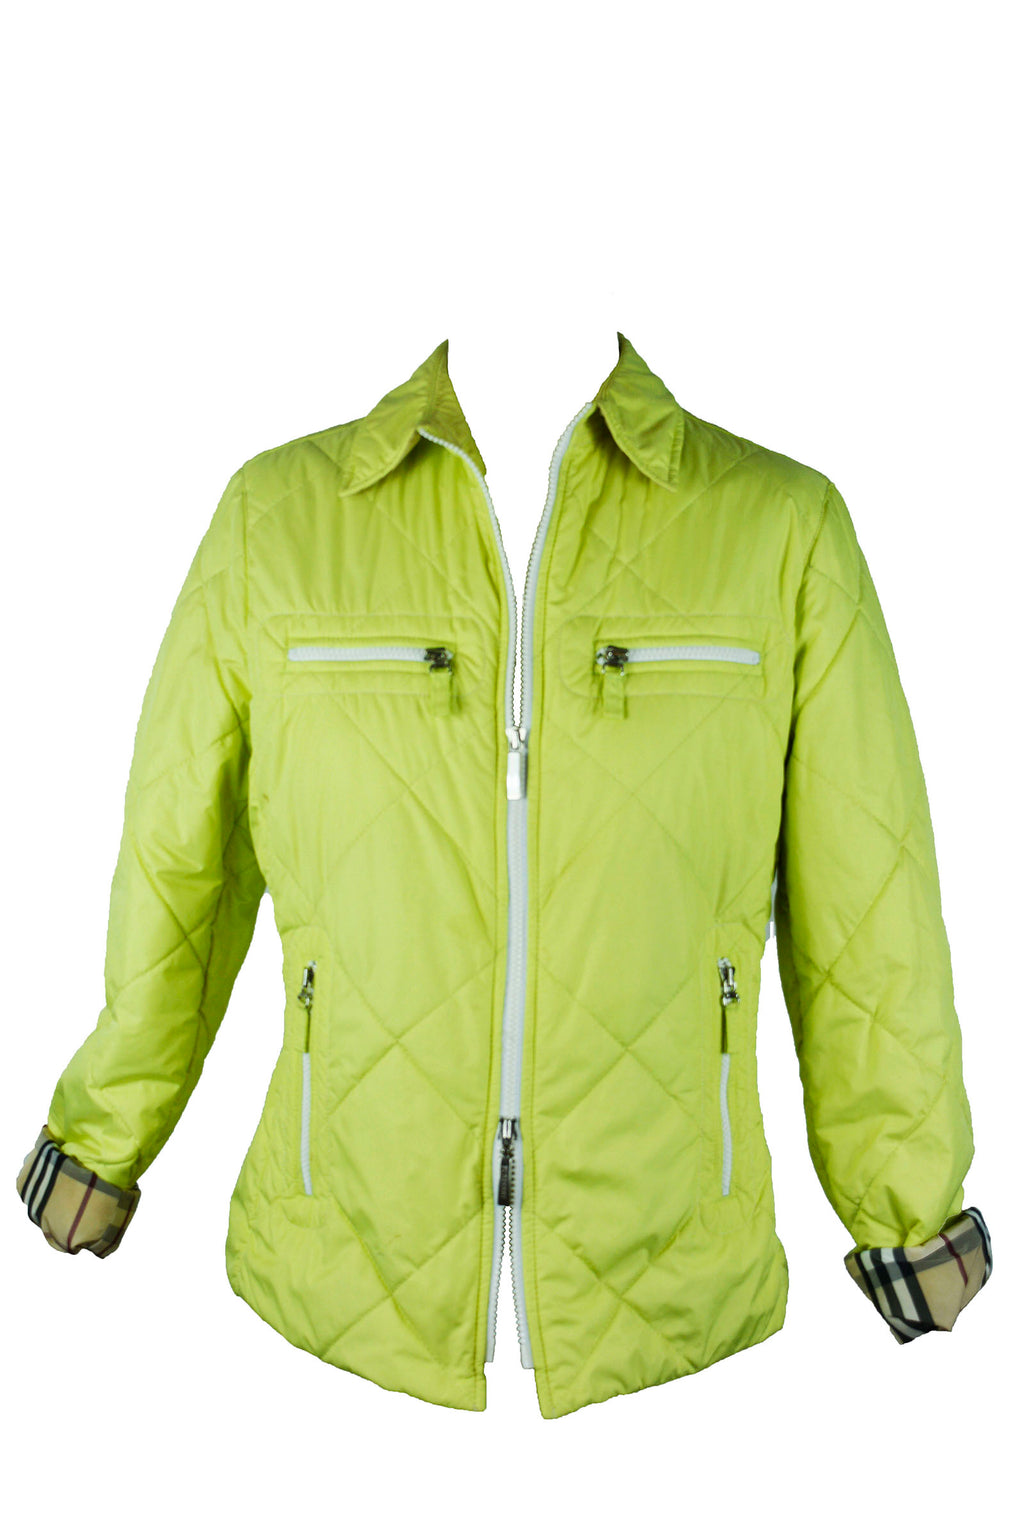 Burberry Waterproof Quilted Jacket in Acid Green and Check Lining Size 42 (EU)